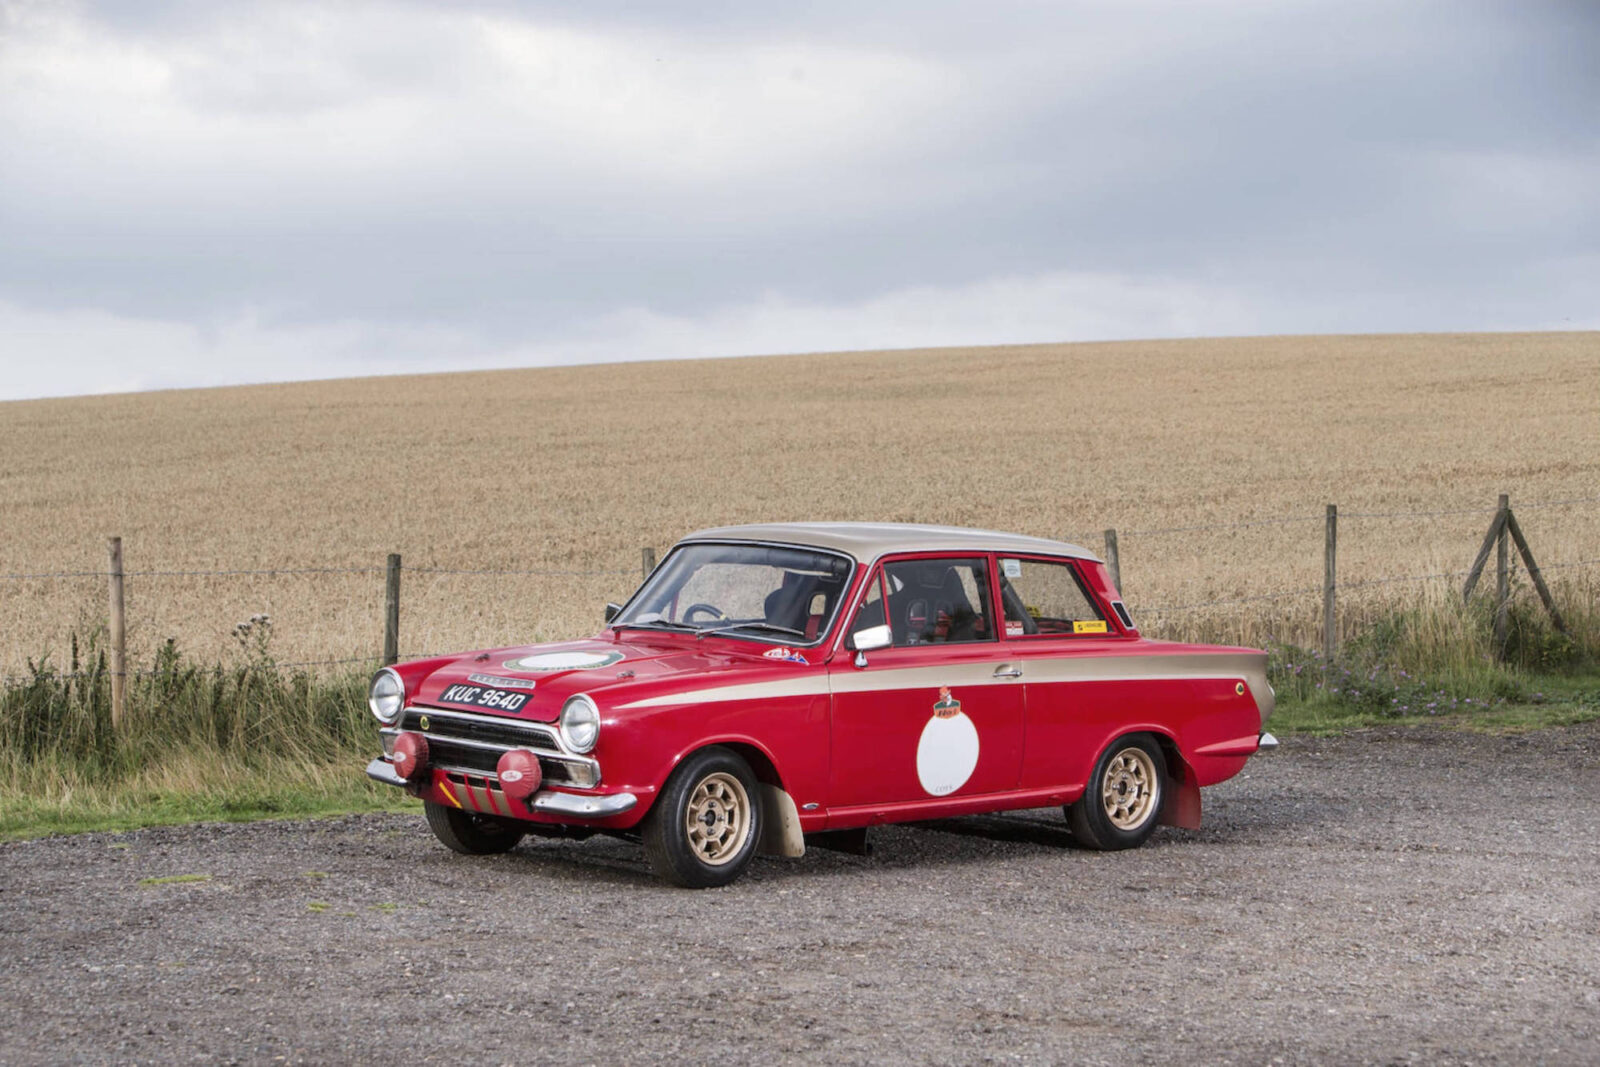 Ford Lotus Cortina 1 1600x1067 - Ford Lotus Cortina Mk1 Rally Saloon